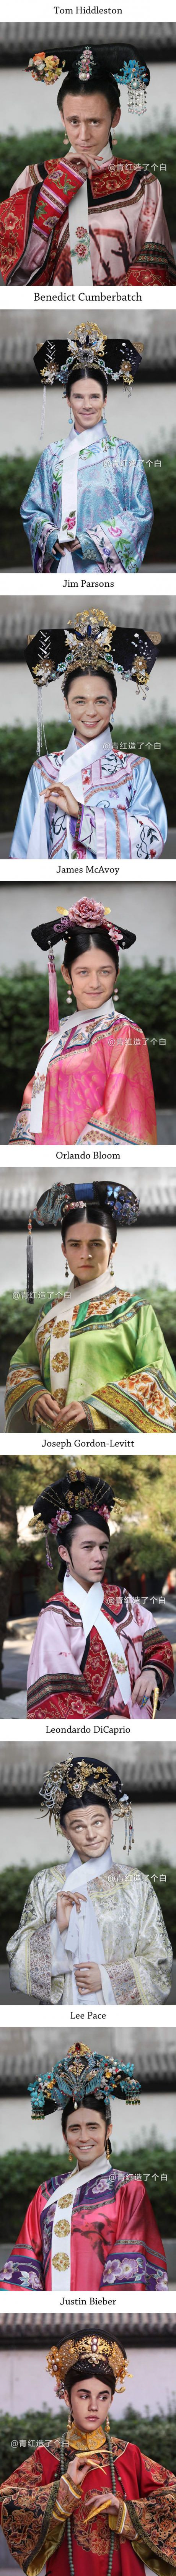 9 Male Celebrities Reimagined As Chinese Beauties From Qing Dynasty